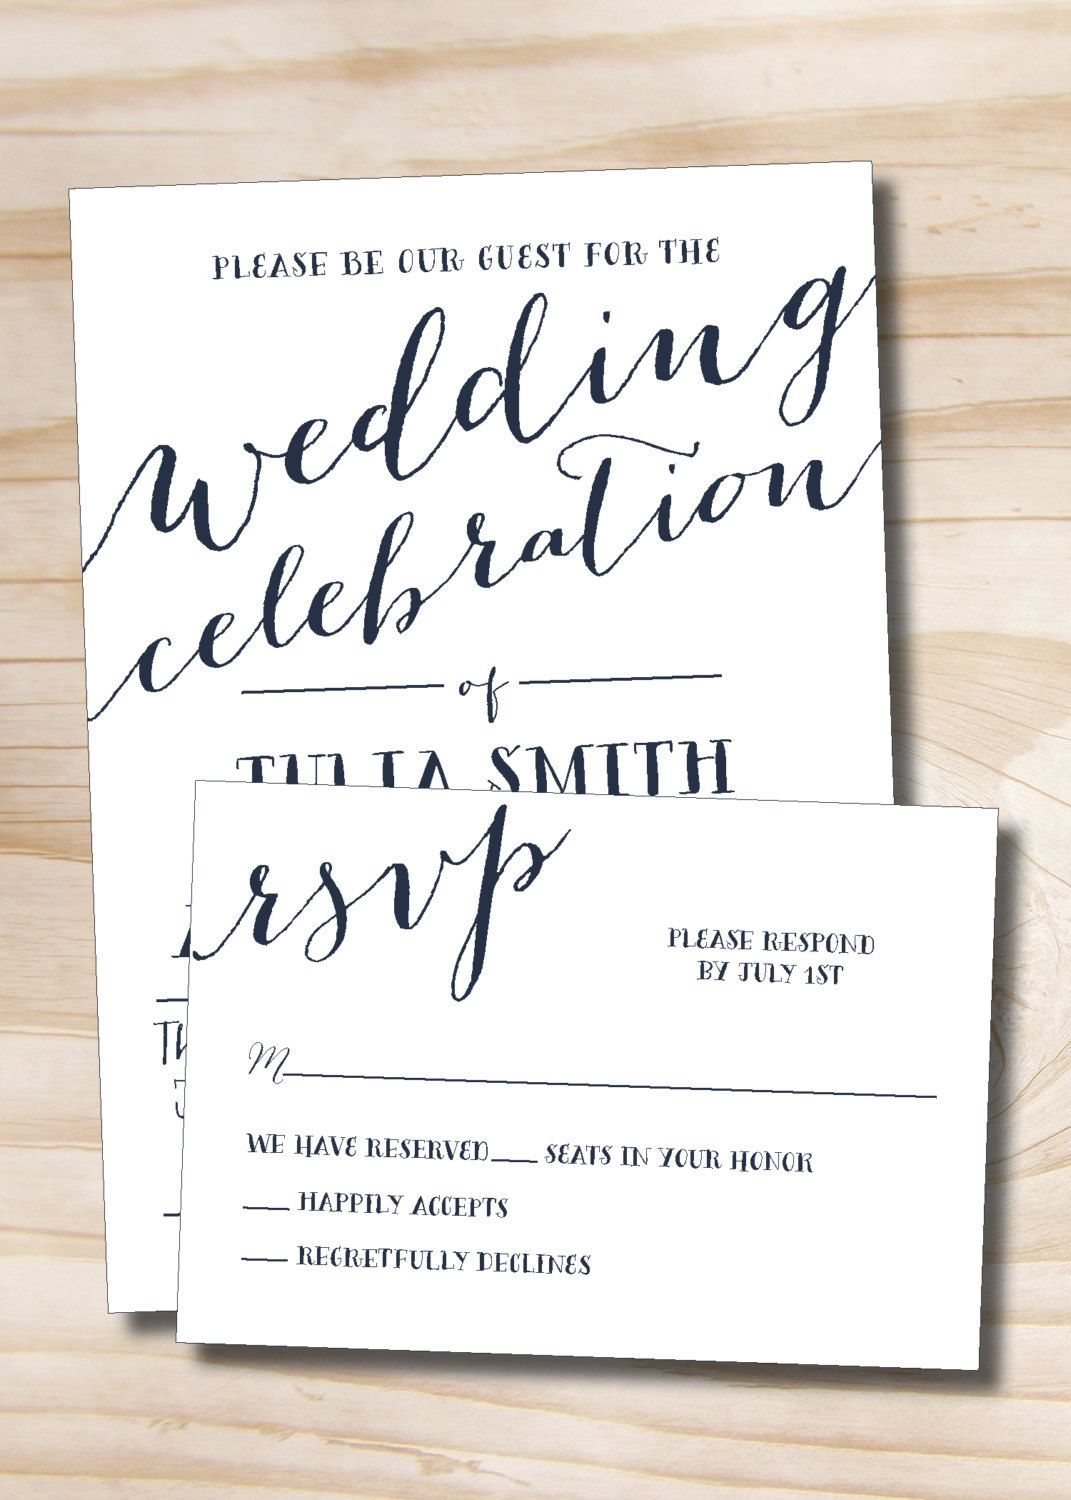 Rustic script celebrate wedding invitation response card 100 rustic script celebrate wedding invitation response card 100 professionally printed invitations response cards by stopboris Choice Image